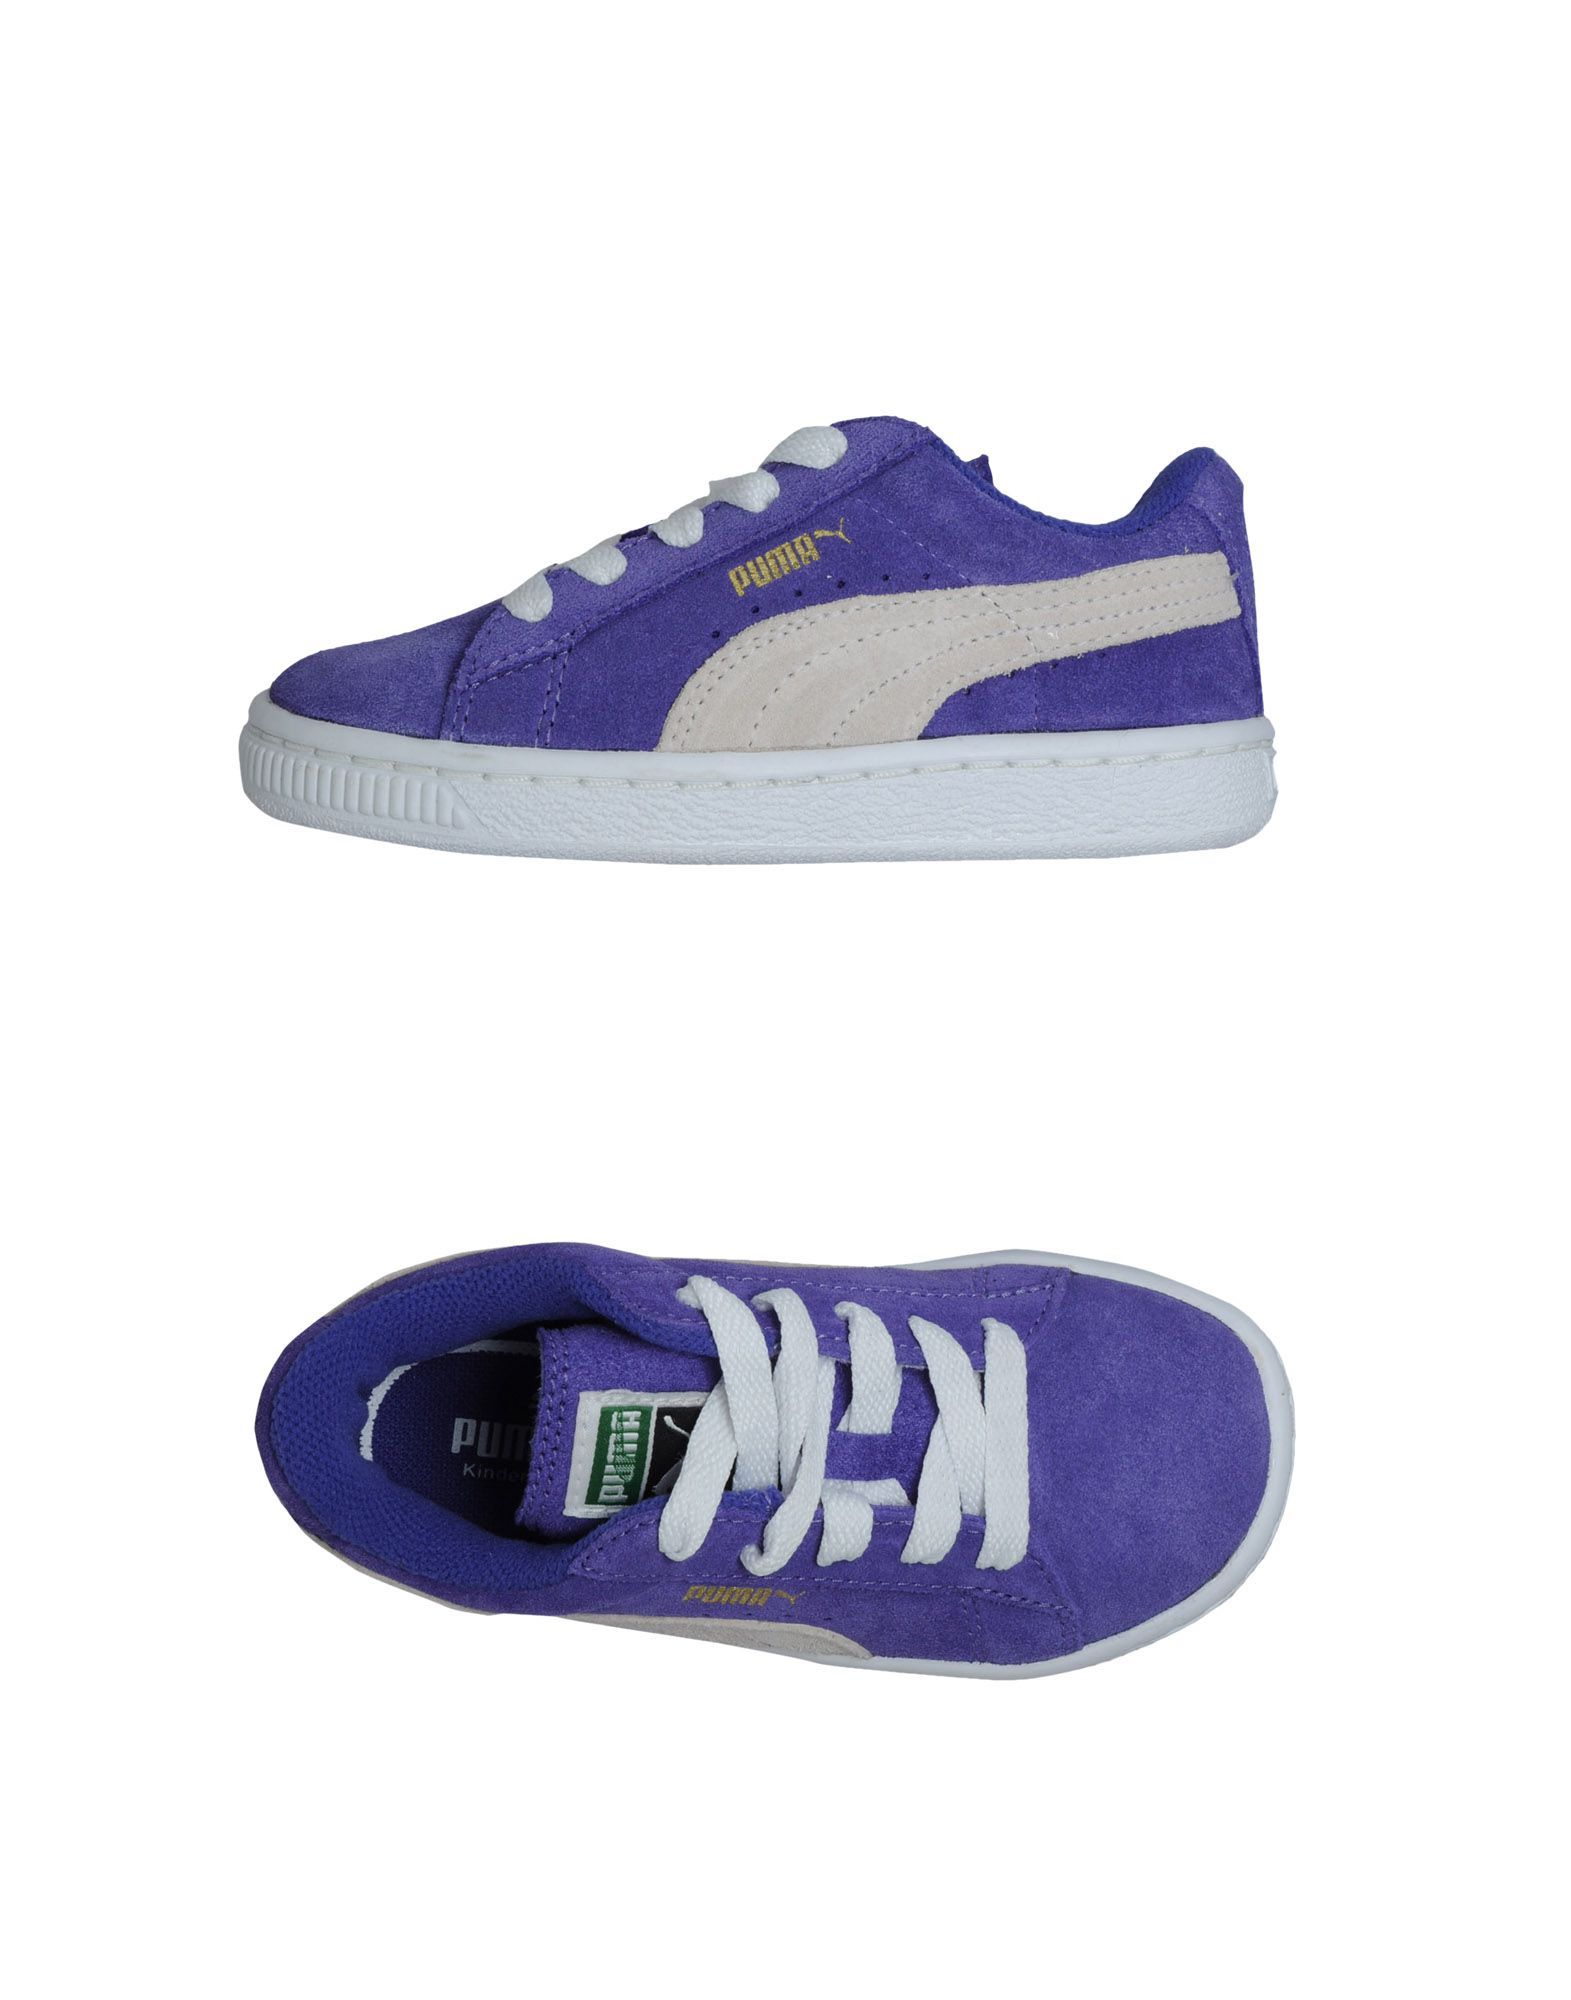 Looking For Womens Puma Shoes In Solid Purple